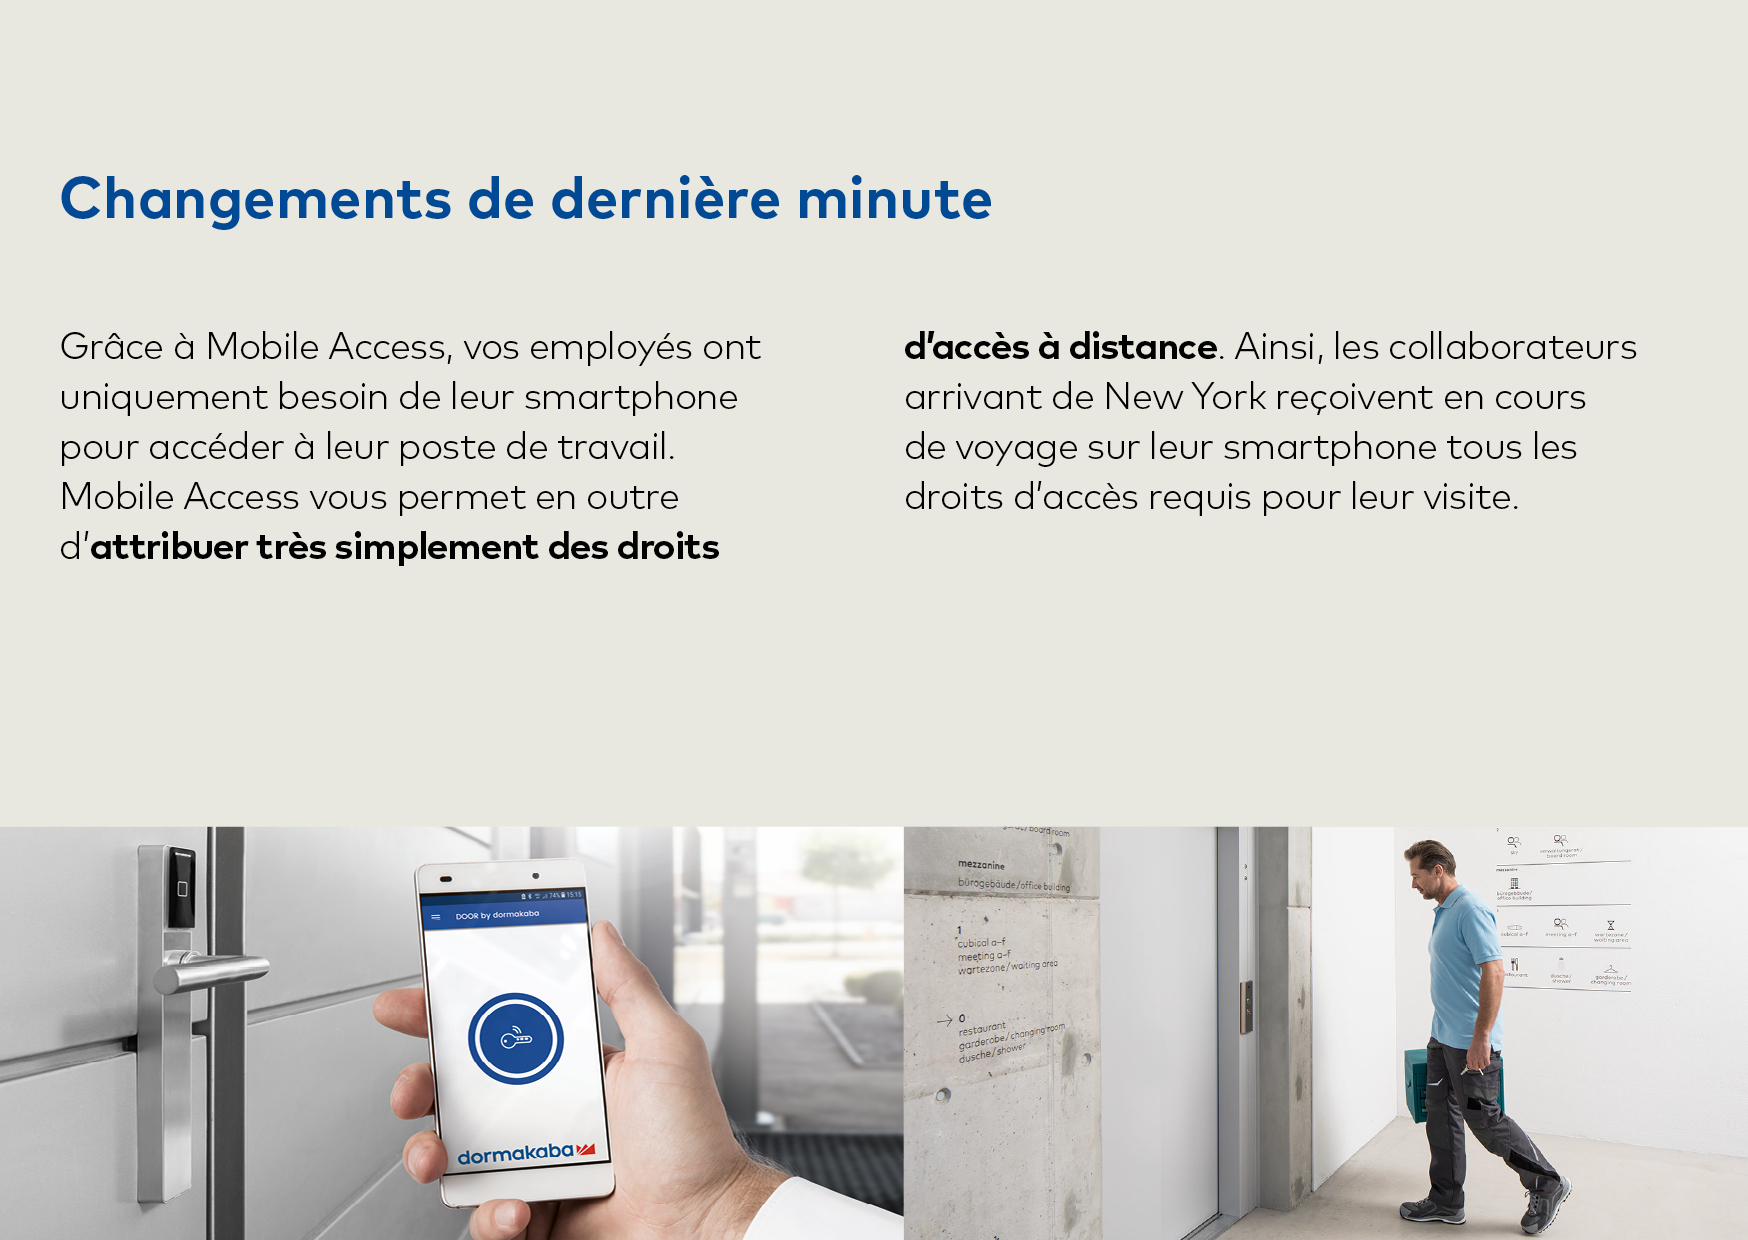 Changements_de_derniere_minute_Mobile_Access